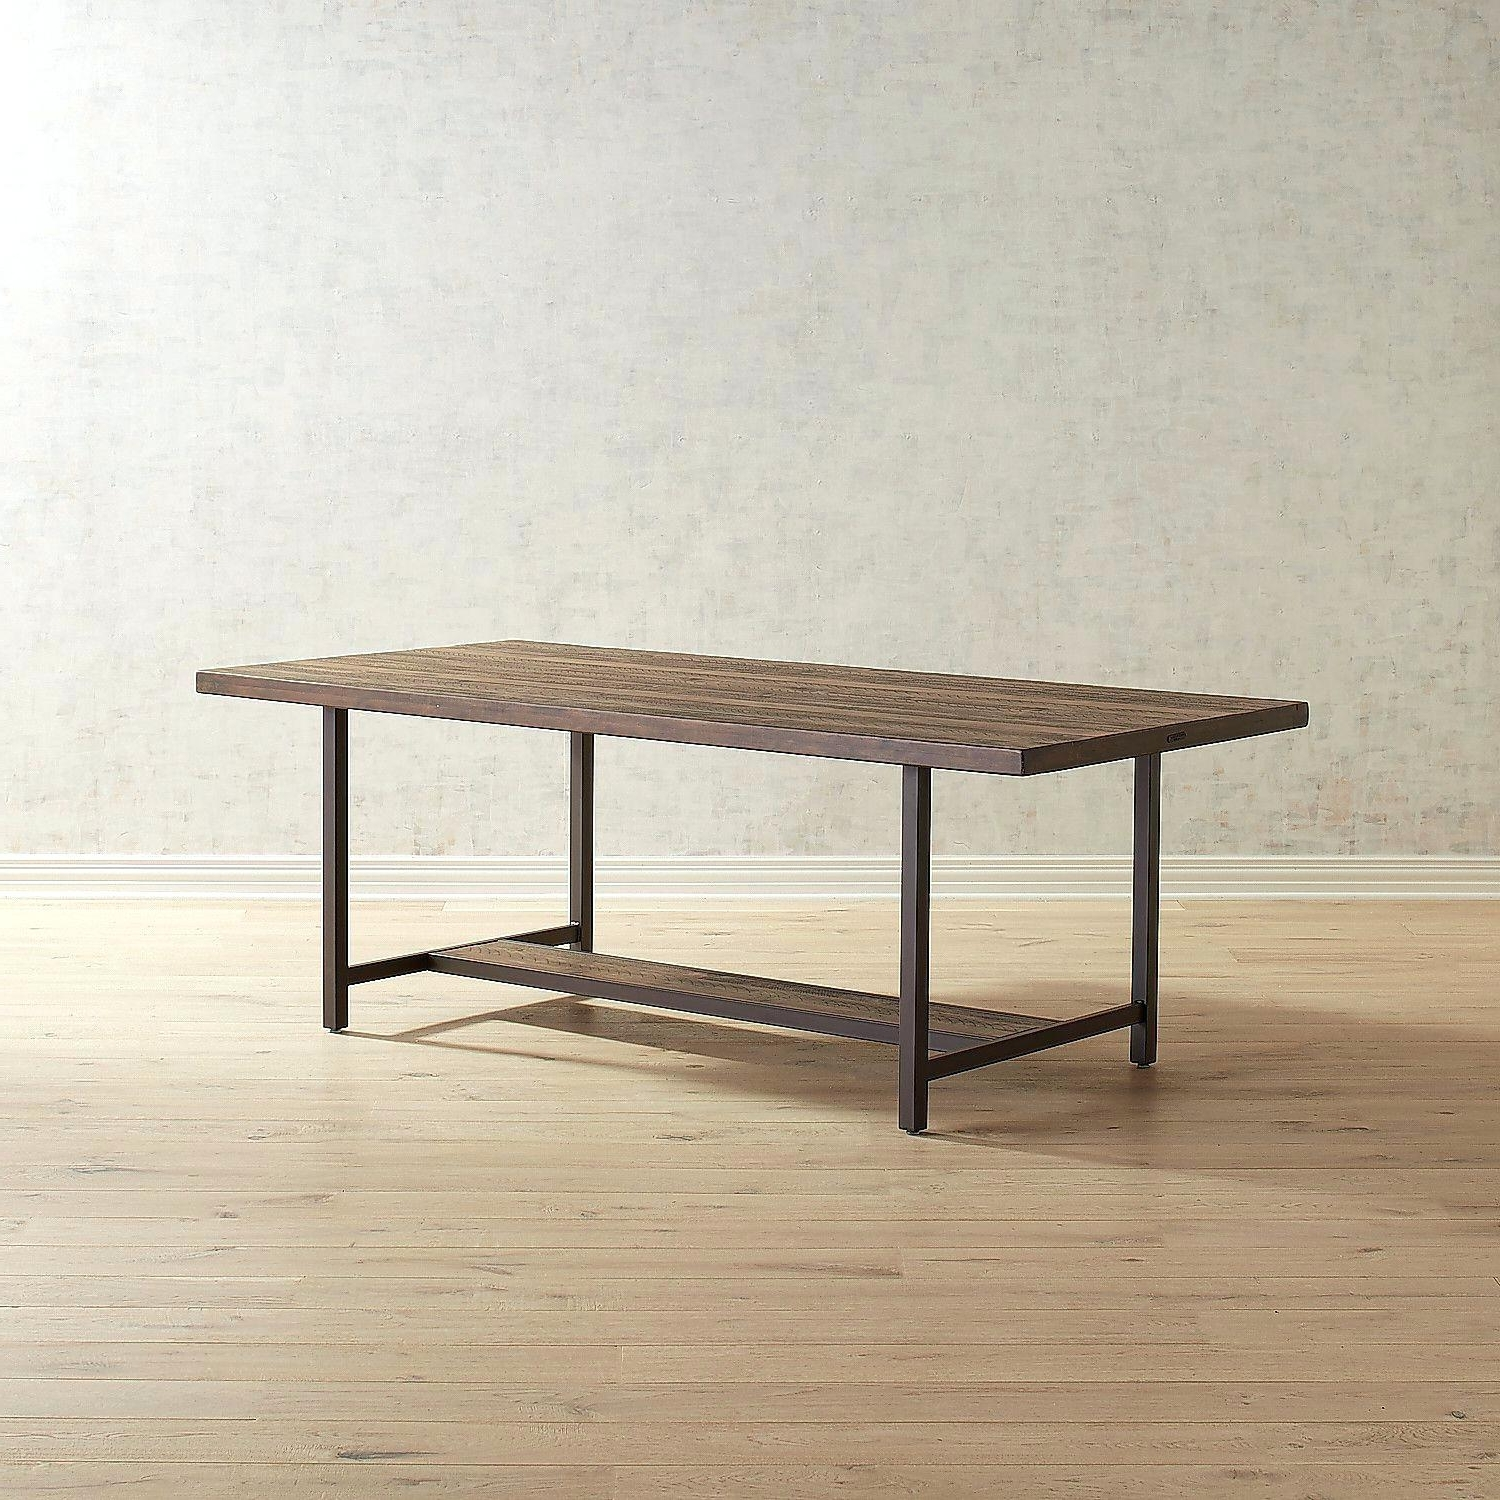 Most Recent Magnolia Home Dining Table Industrial – Battenhall Throughout Magnolia Home Sawbuck Dining Tables (View 21 of 25)